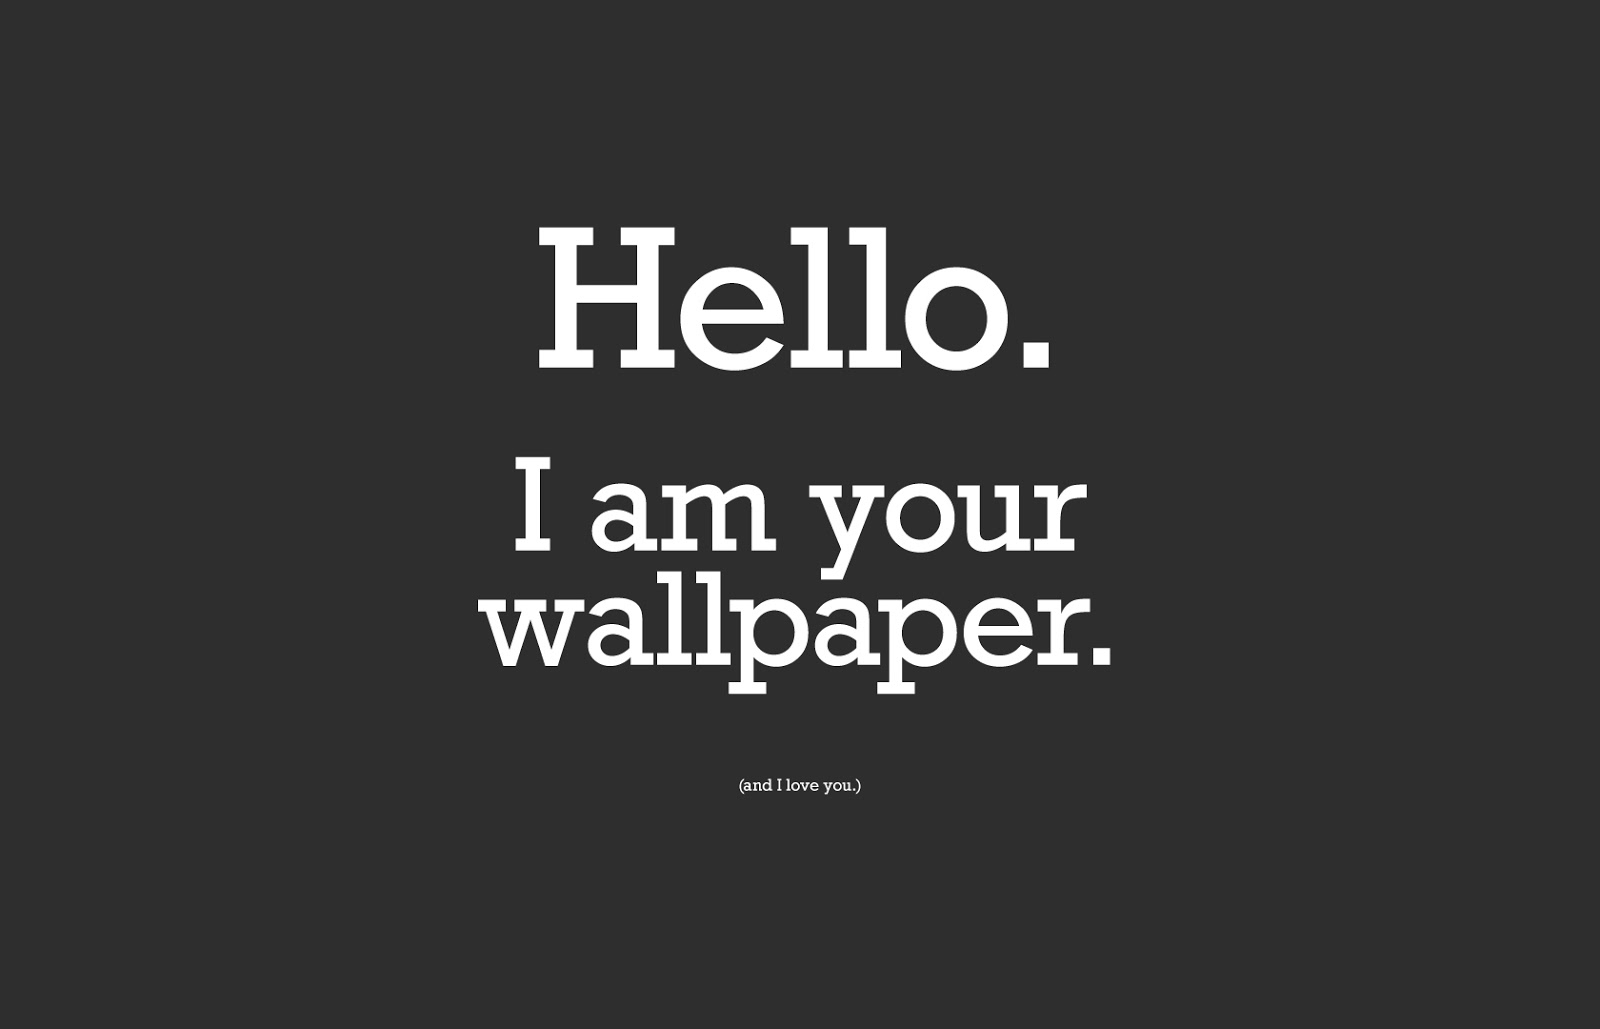 Wallpaper Quotes And Sayings